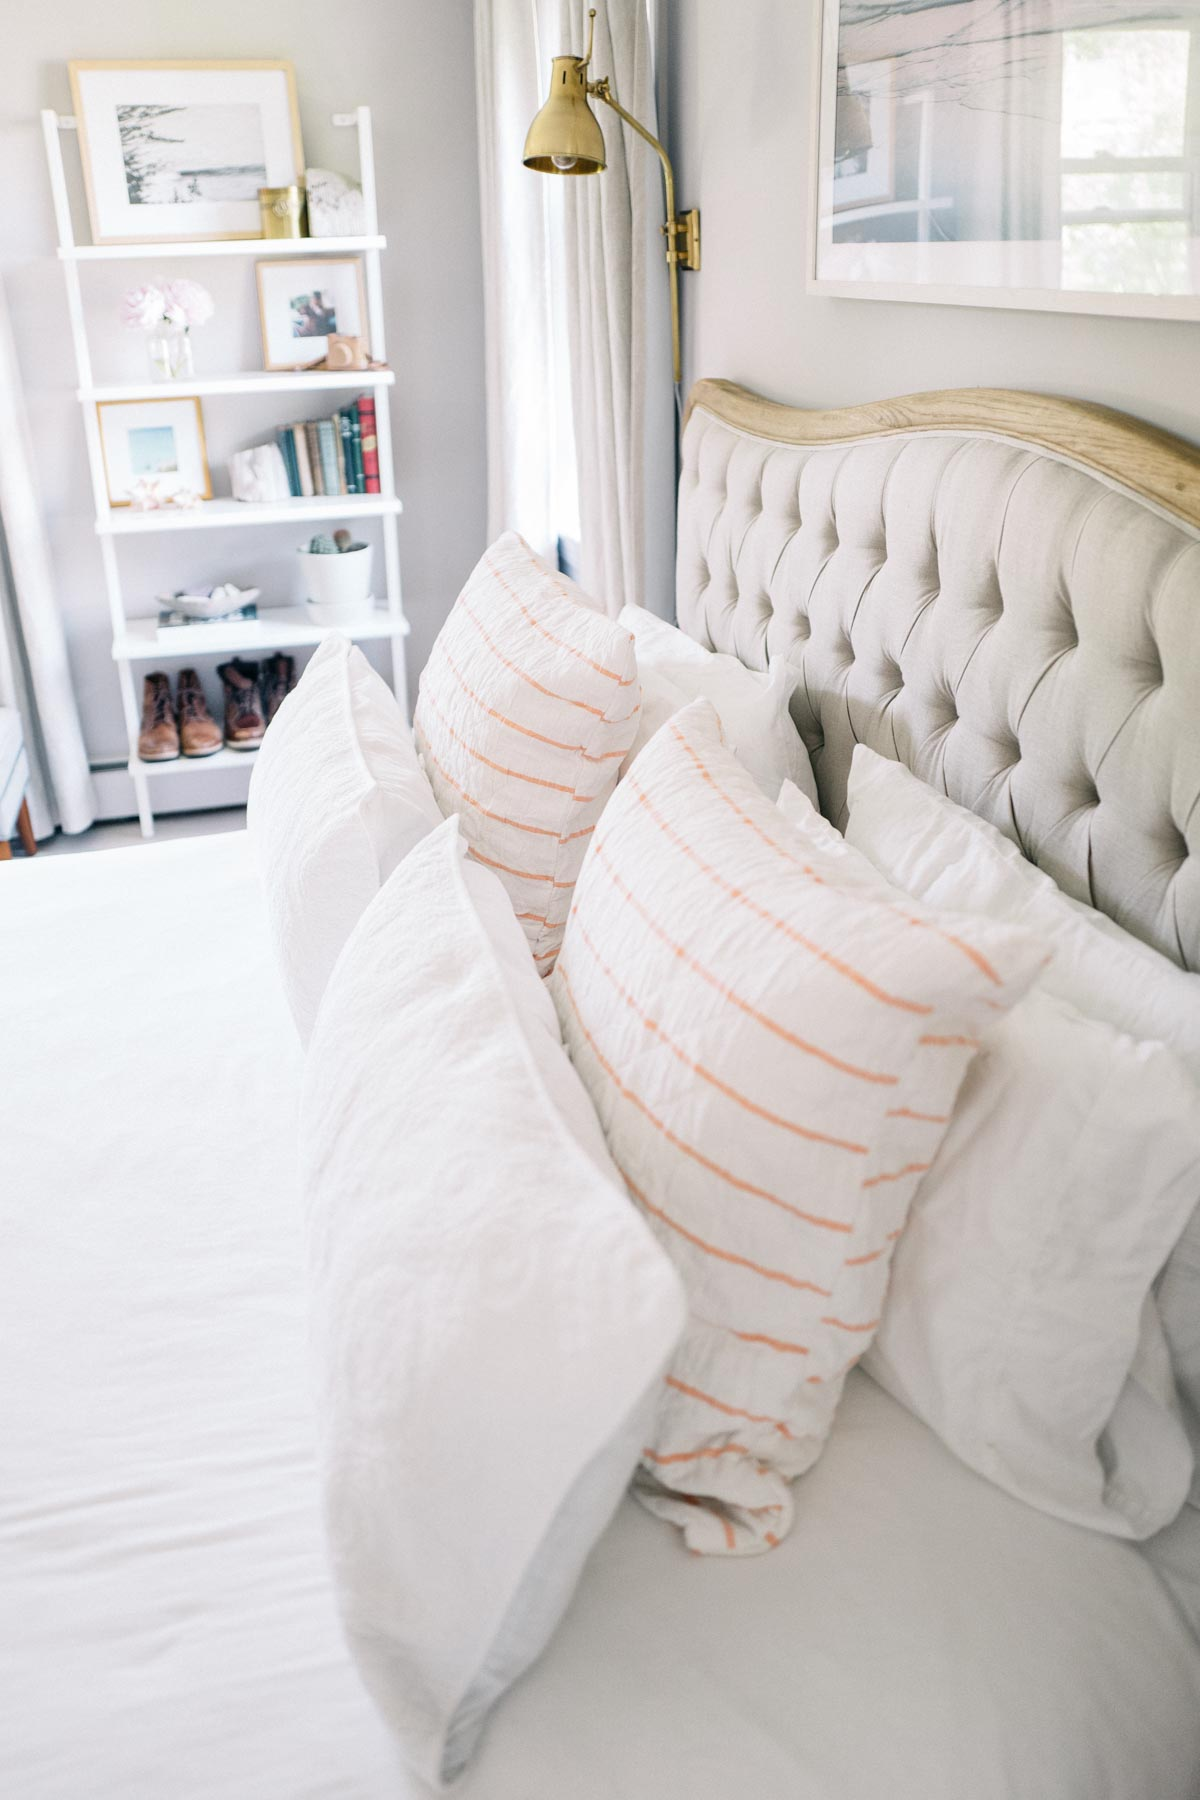 Jess Ann Kirby installed a tufted headboard and REbecca Atwood shams for her updated bed